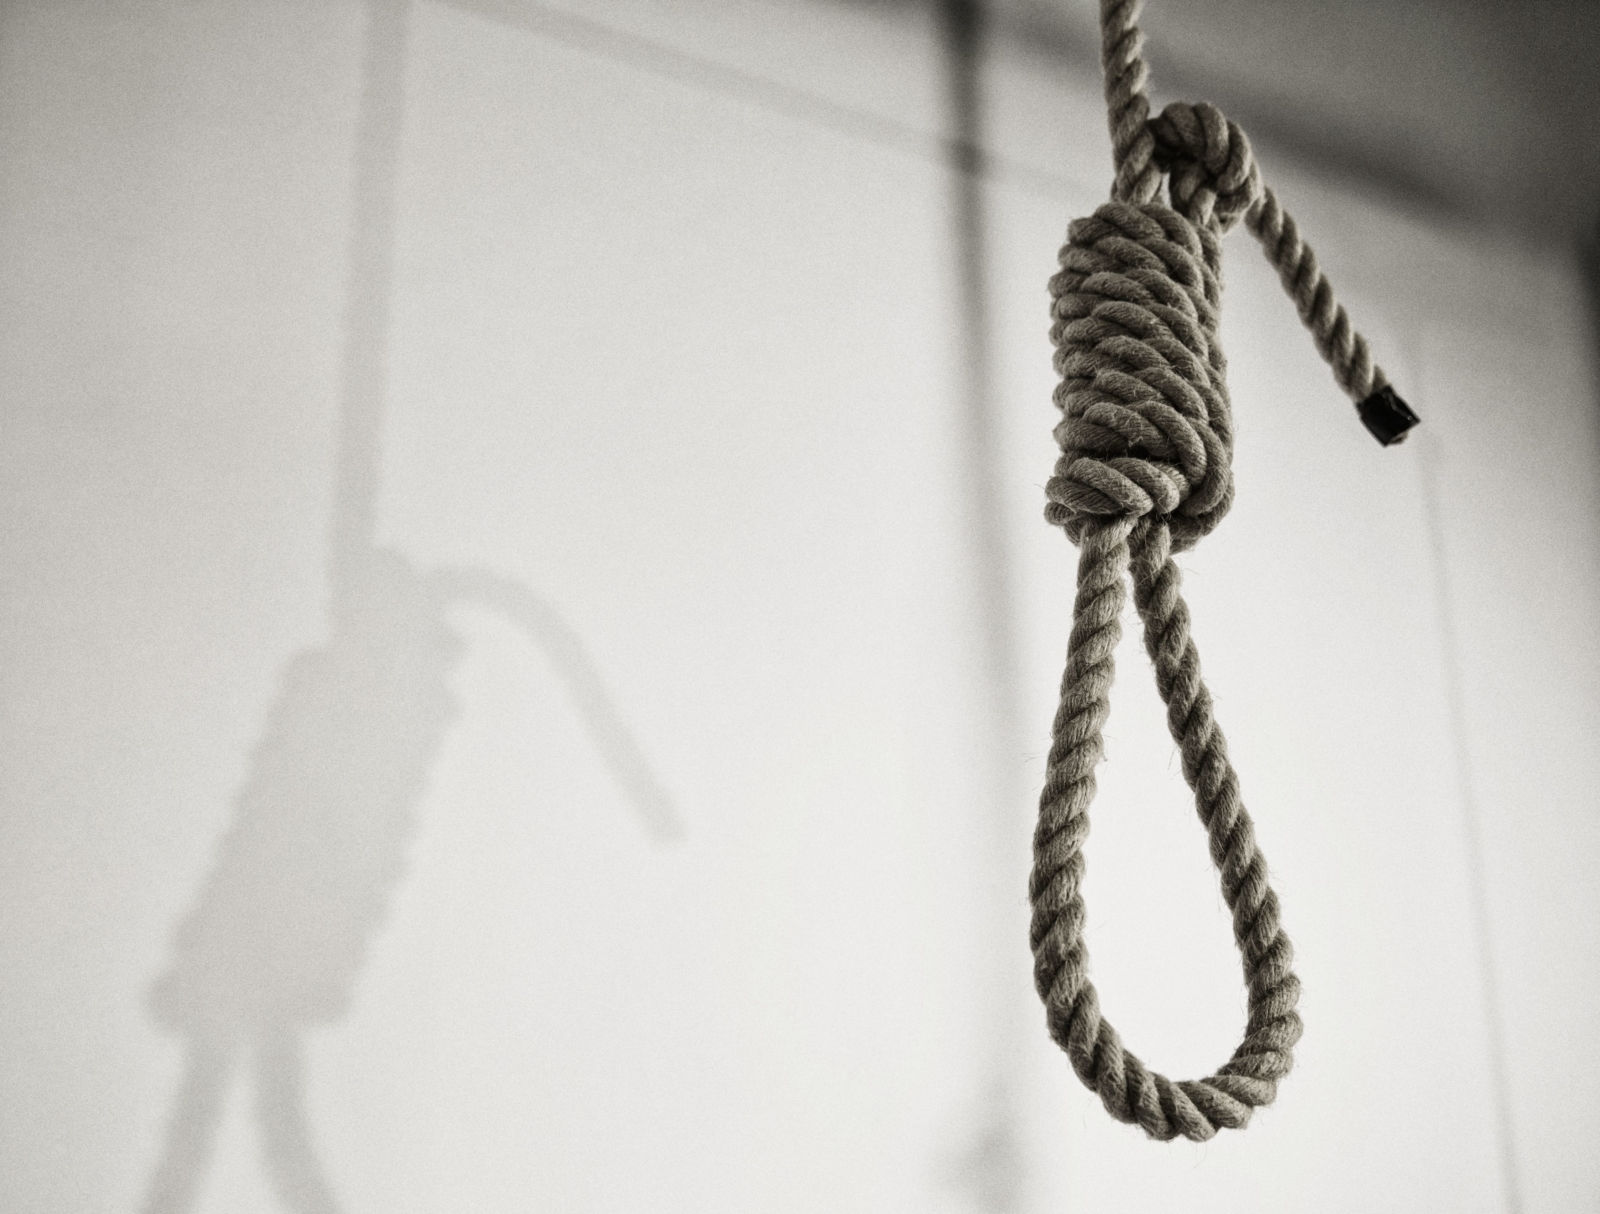 Equatorial Guinea: Presidential announcement a welcome step towards abolishing the death penalty